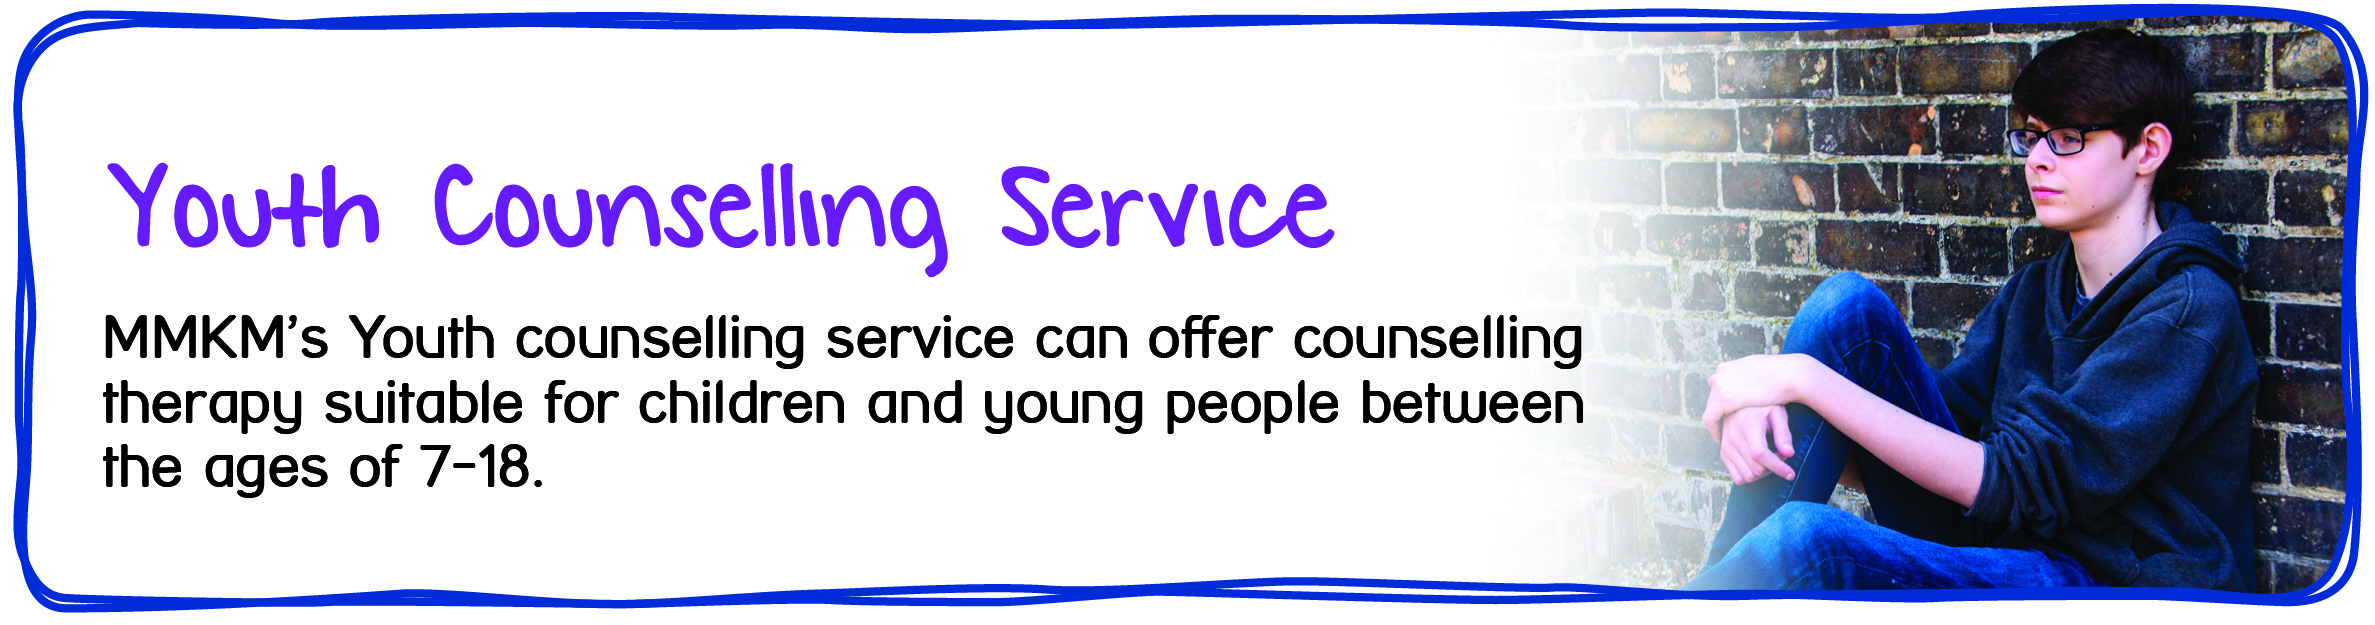 Youth Counselling In Kent - MMKM's Youth Counselling service can offer counselling therapy suitable for children and young people between the ages of 7 and 18.